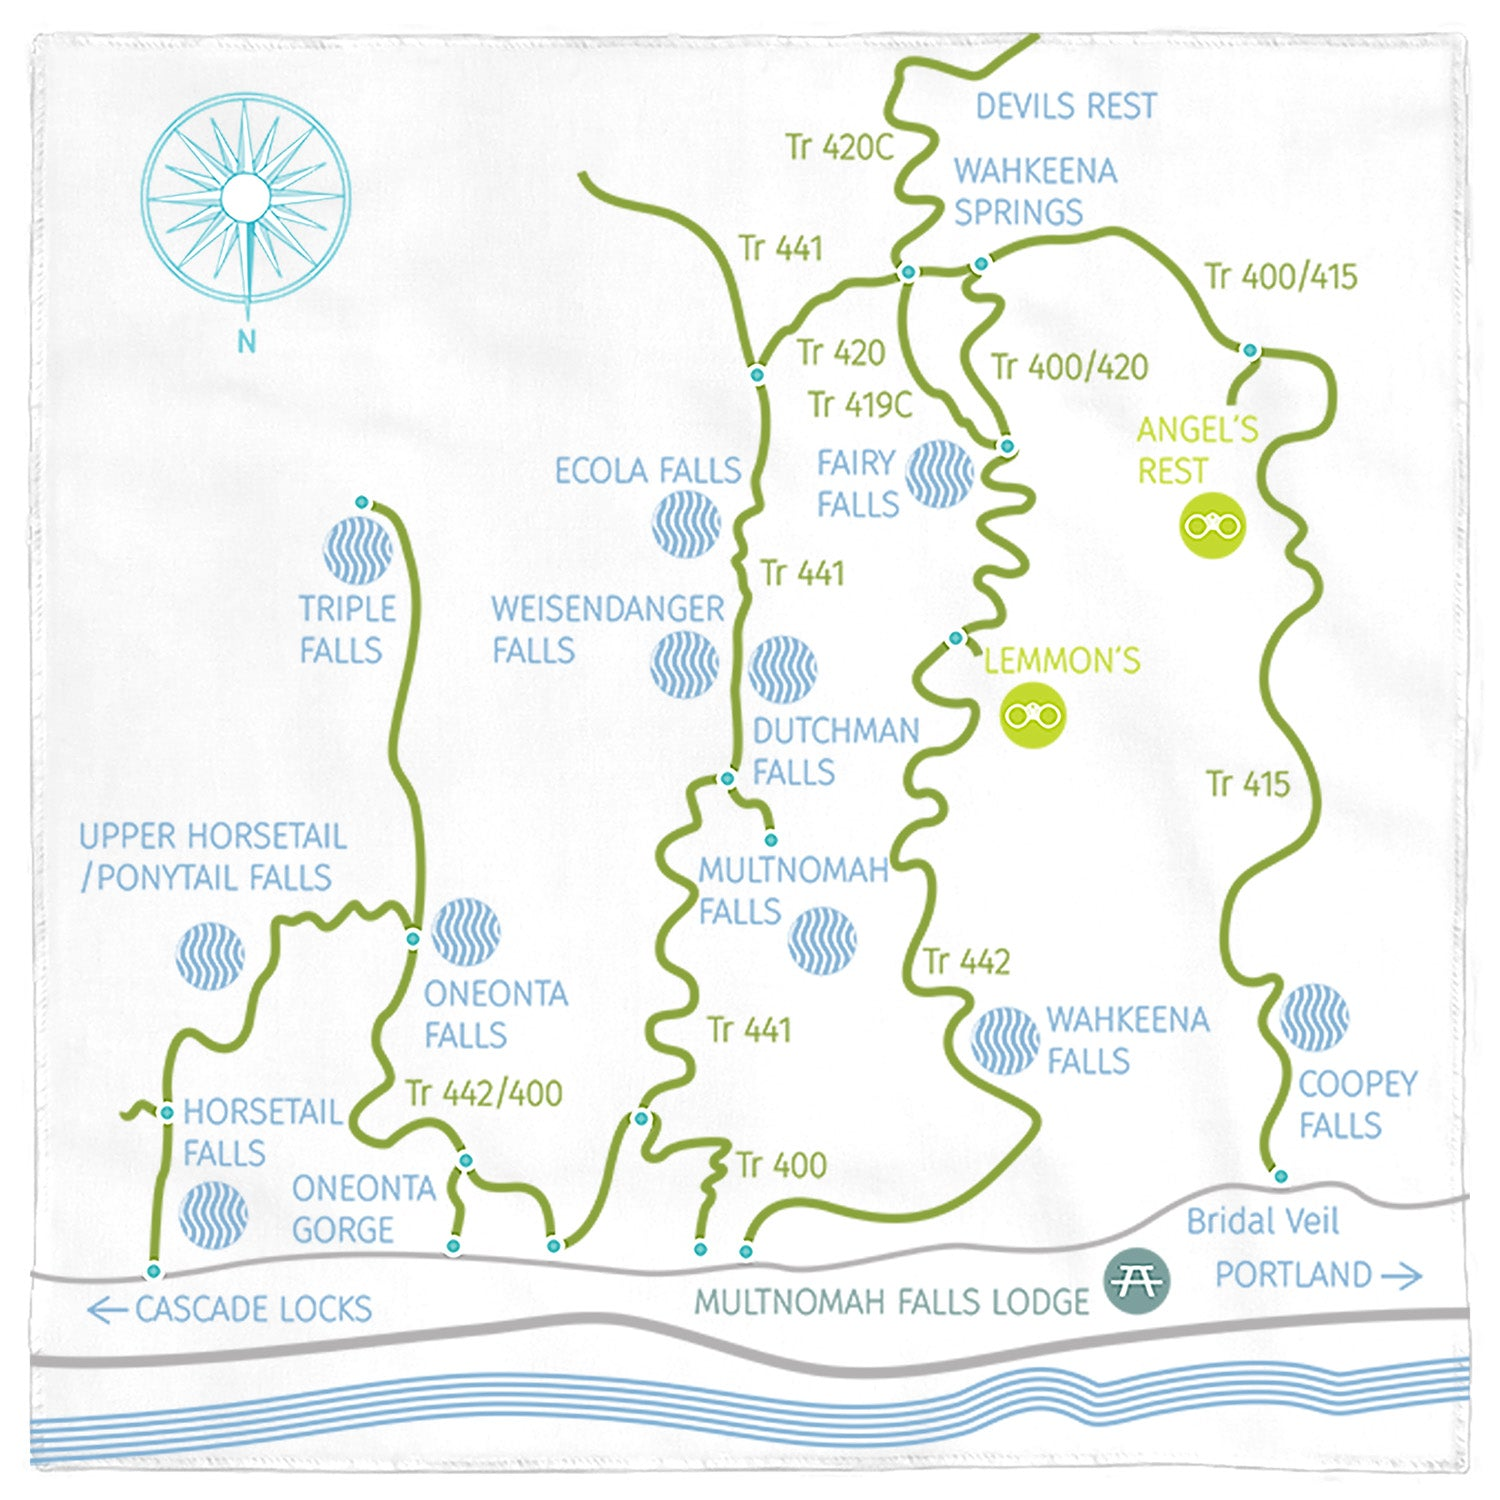 Columbia River Gorge / Multnomah Falls Hiking Map Scarf Bandana - Designhype - City Inspired Accessories